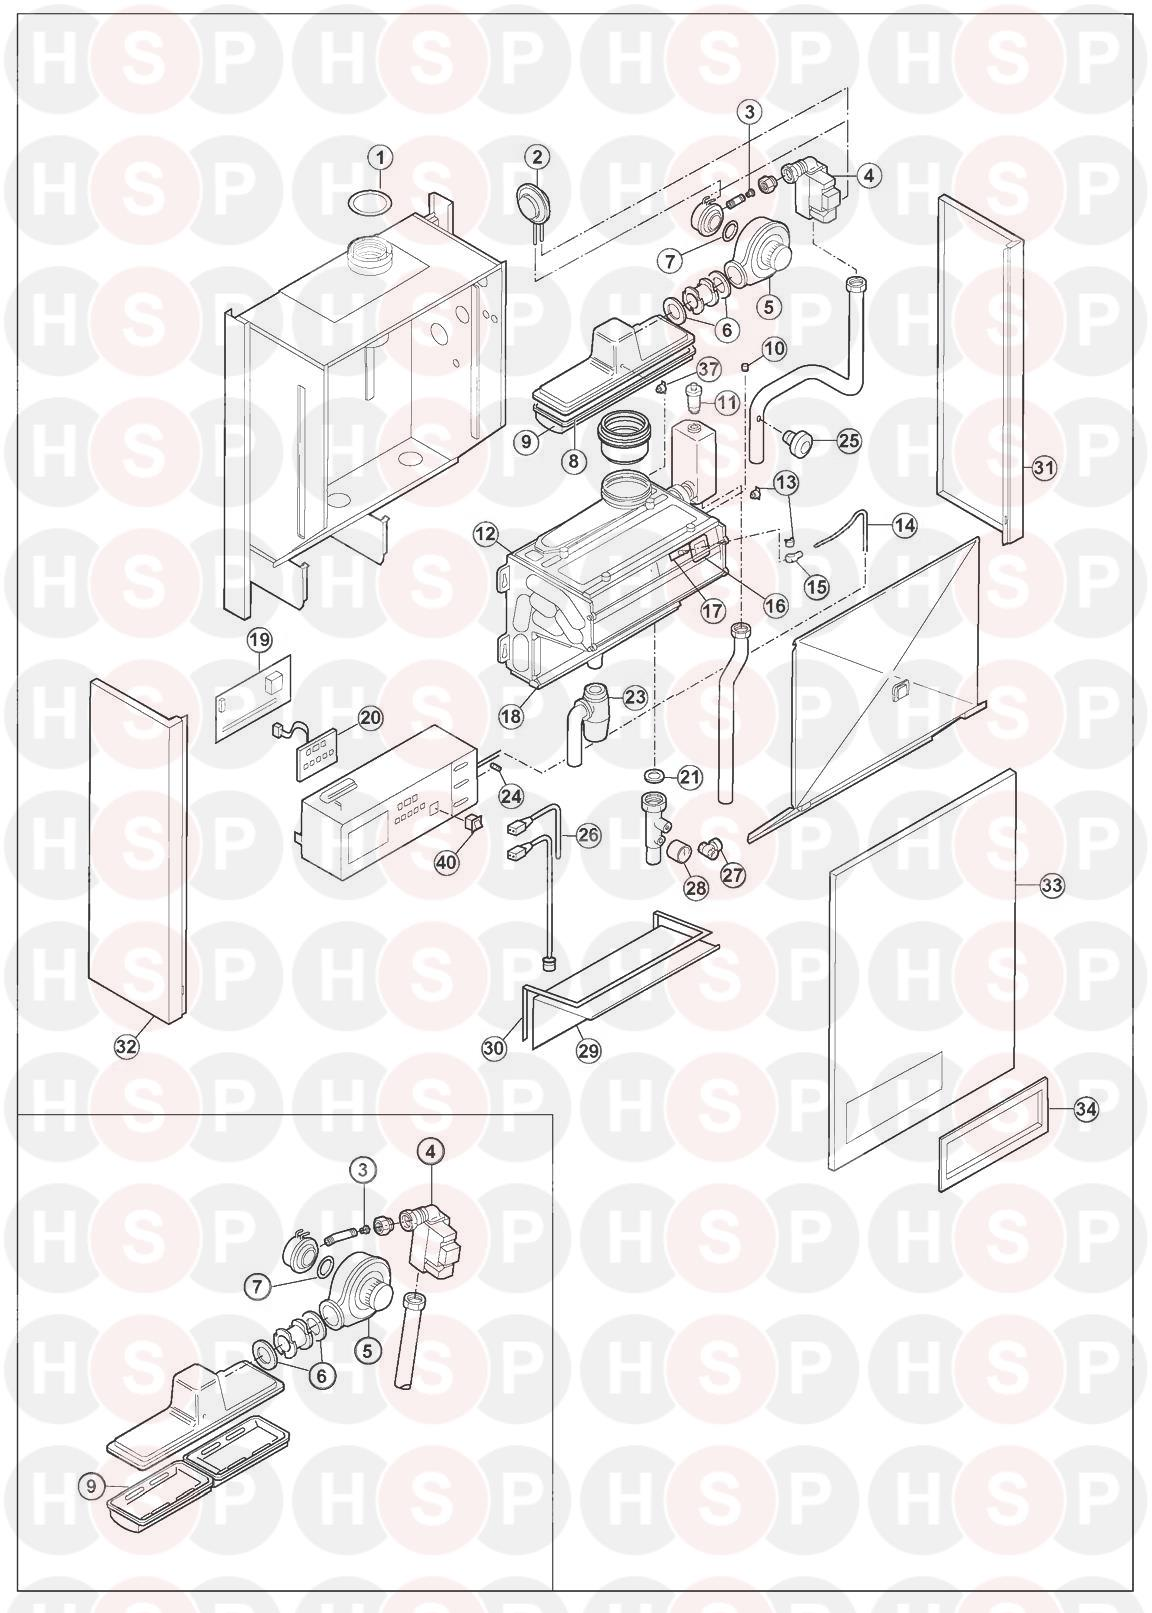 Remeha-Broag W40/60 1:1 Ratio High / Low (EXPLODED VIEW